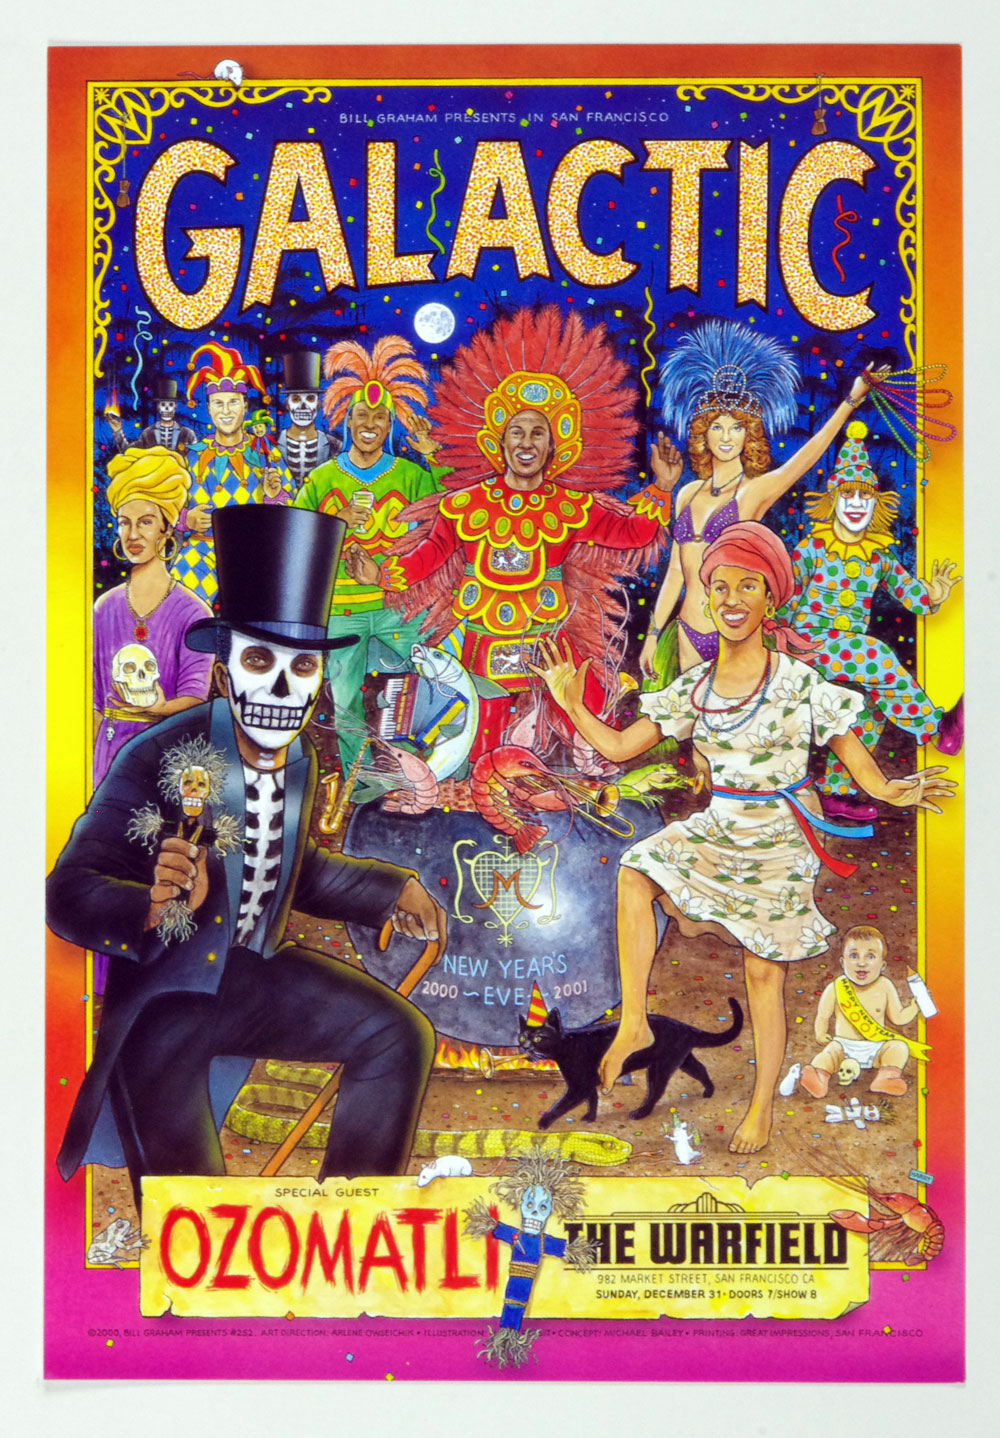 Bill Graham Presents Poster 2000 Dec 31 Galactic Ozomatli #252